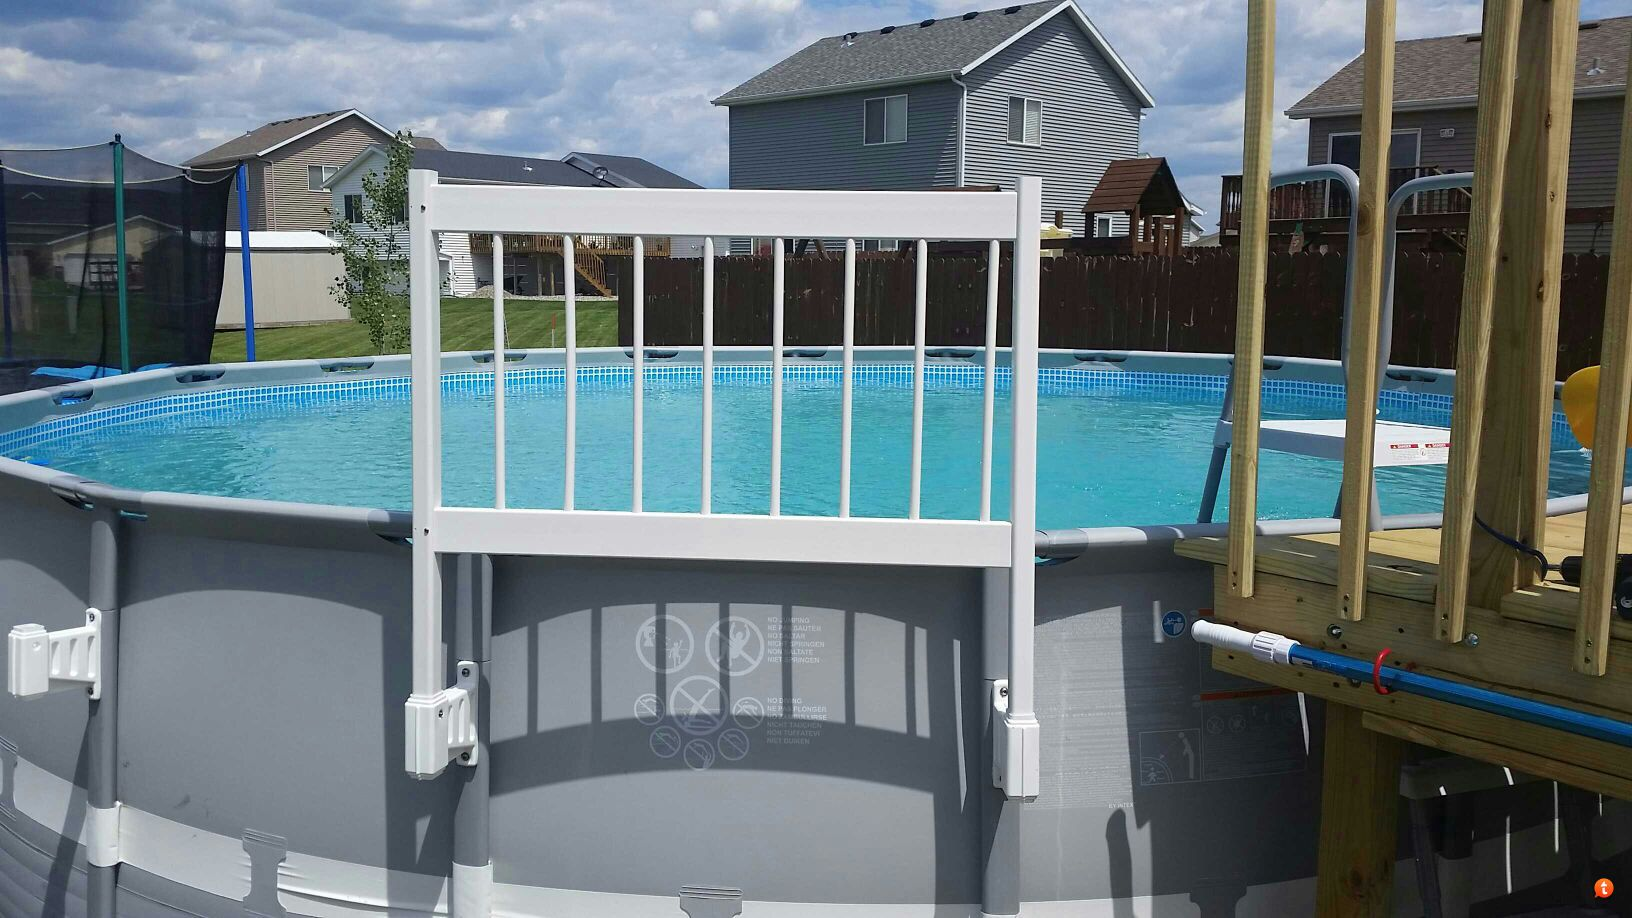 Viynylworks 24 Safety Fence Install Trouble Free Pool